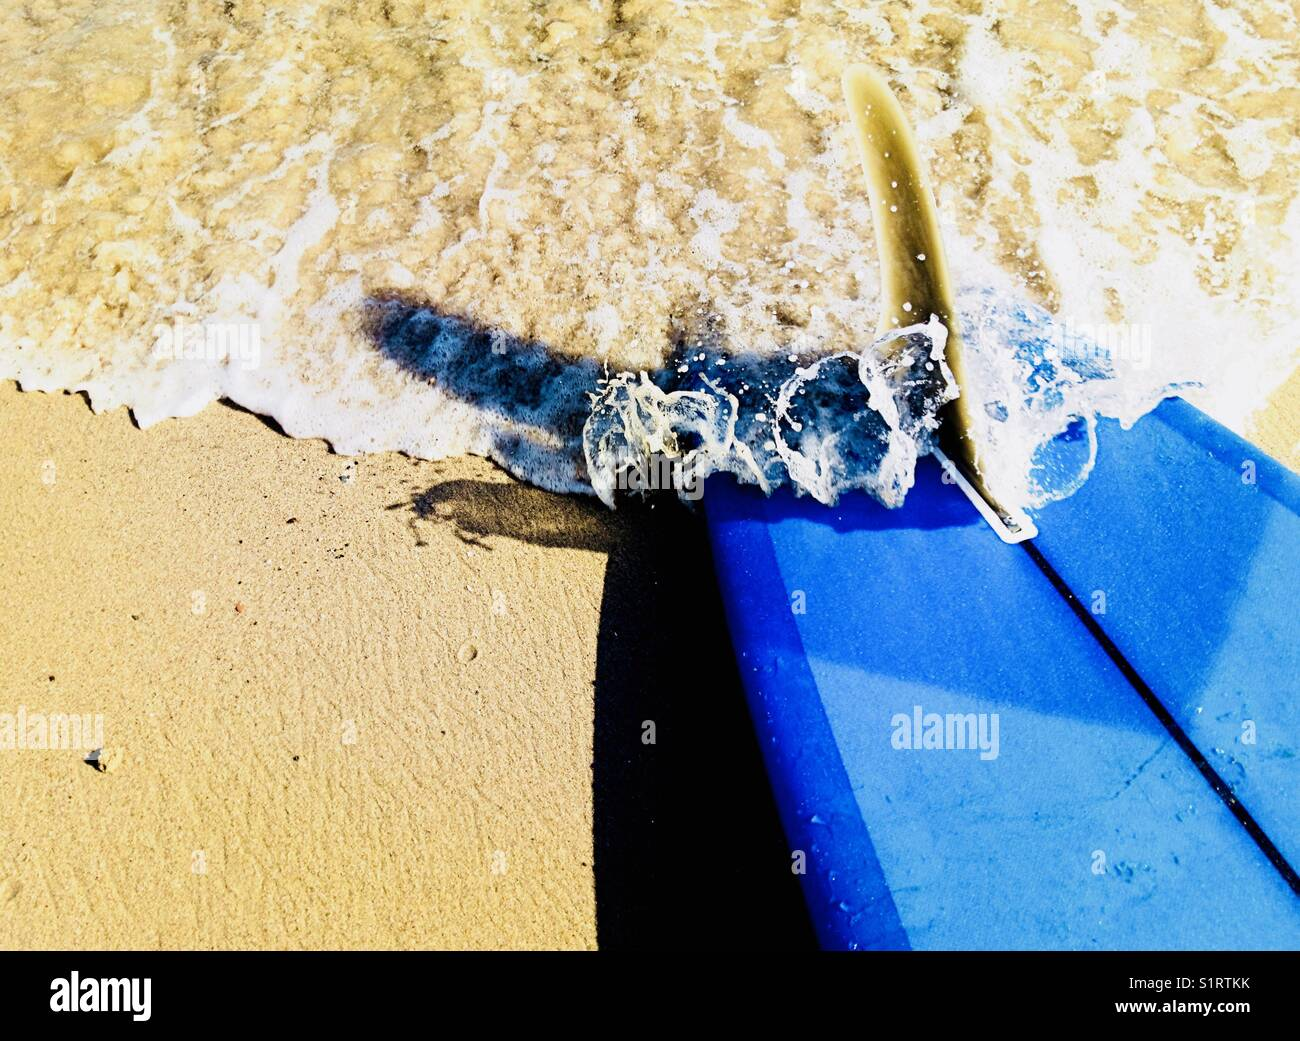 A wave rushes over a surfboard at the beach. Malibu, California USA. - Stock Image